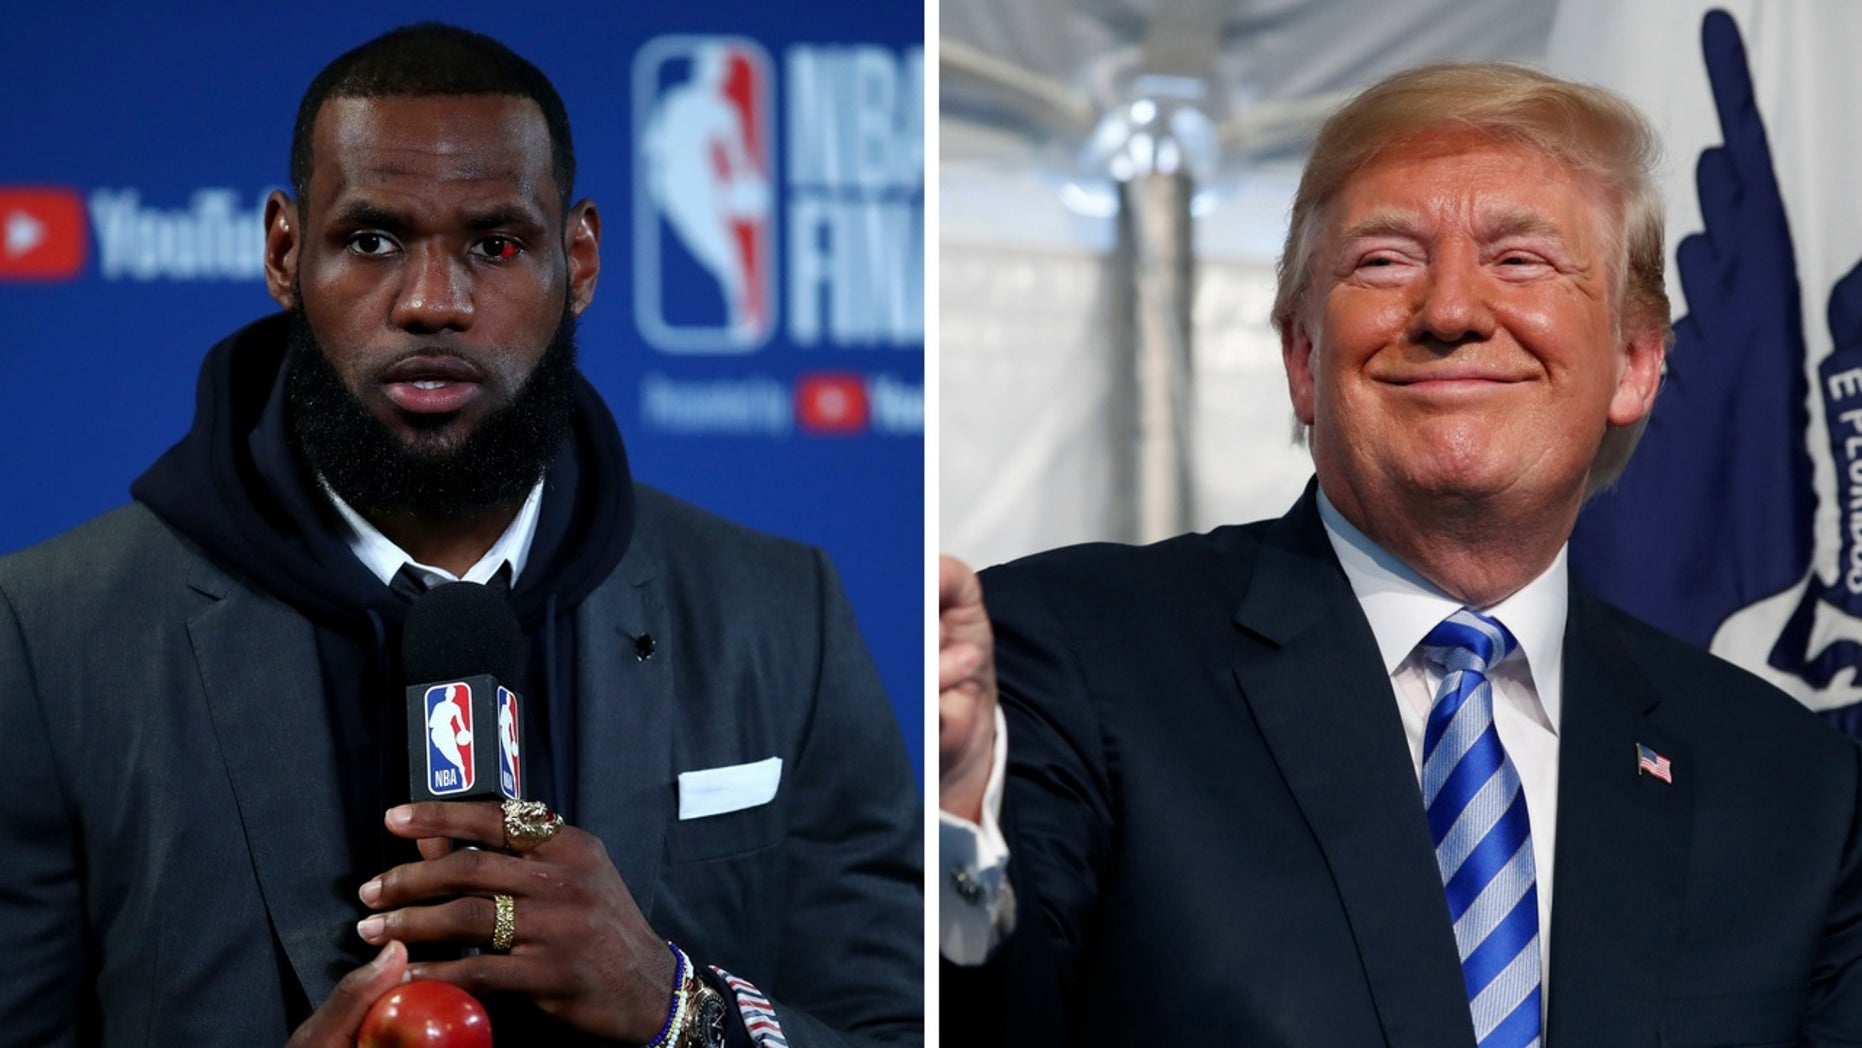 NBA star LeBron James said on Tuesday that neither teams participating in the NBA Finals would want an invite to the White House.